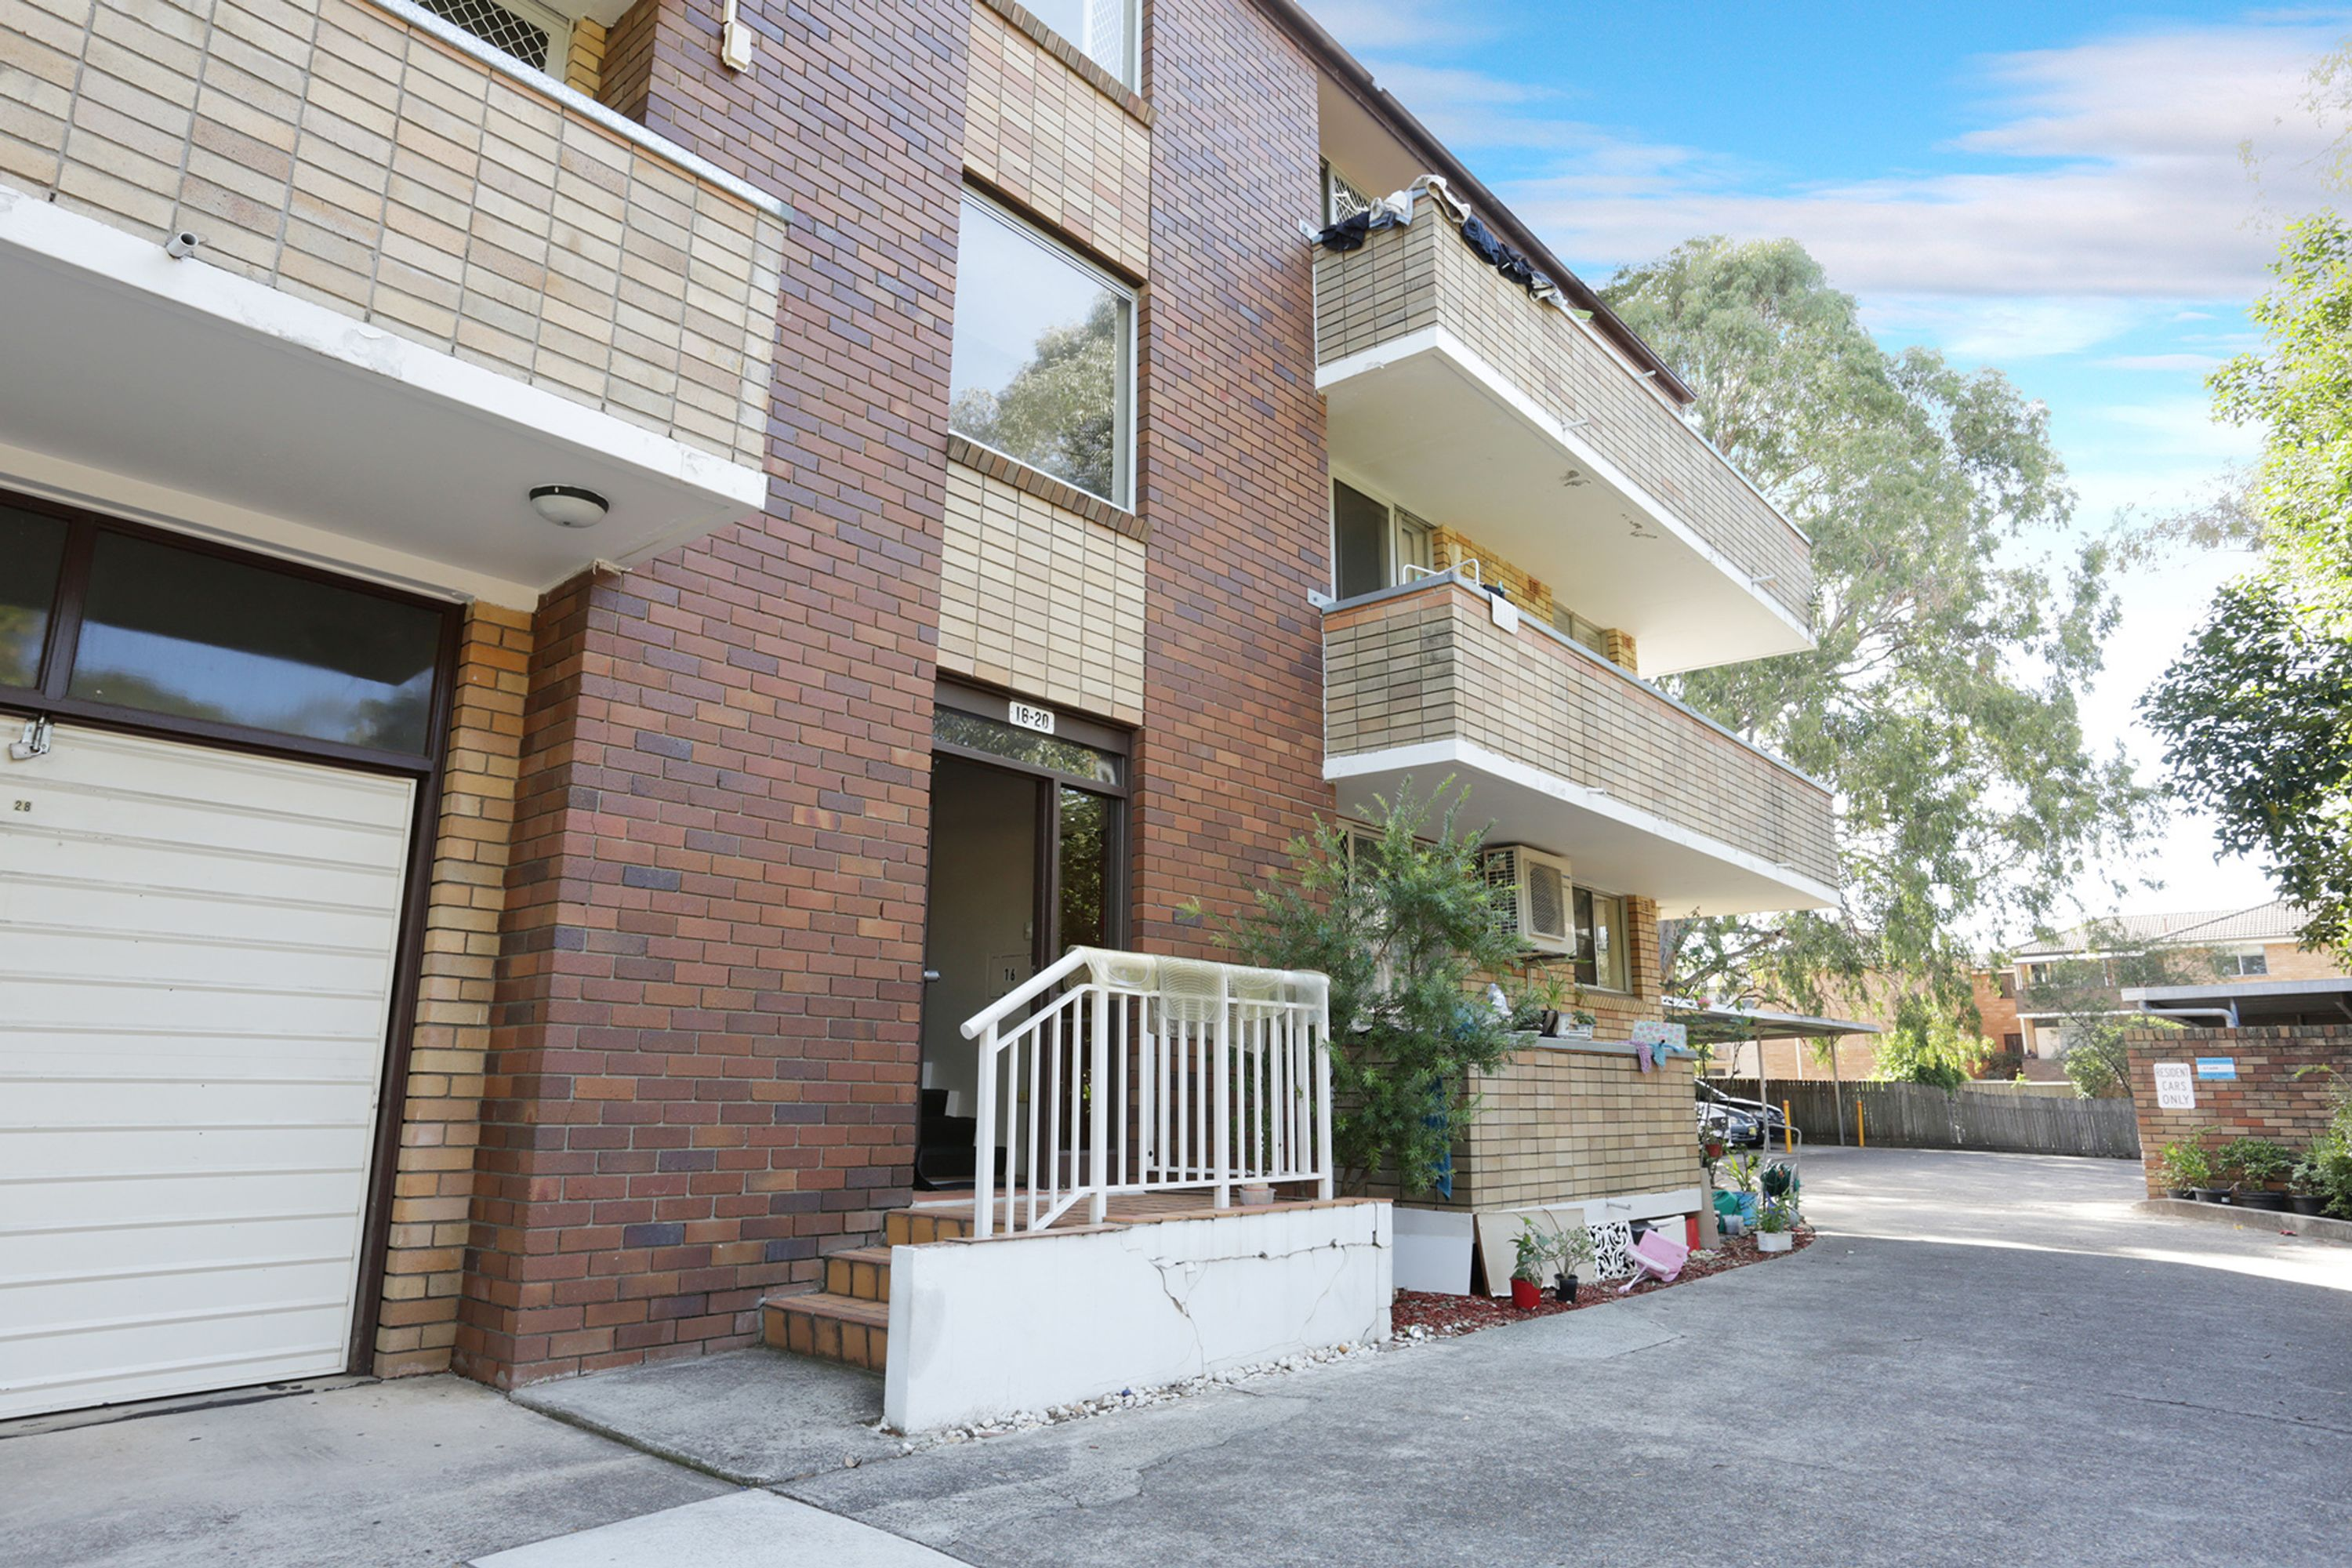 19/23 St Anne Street, Merrylands, NSW 2160